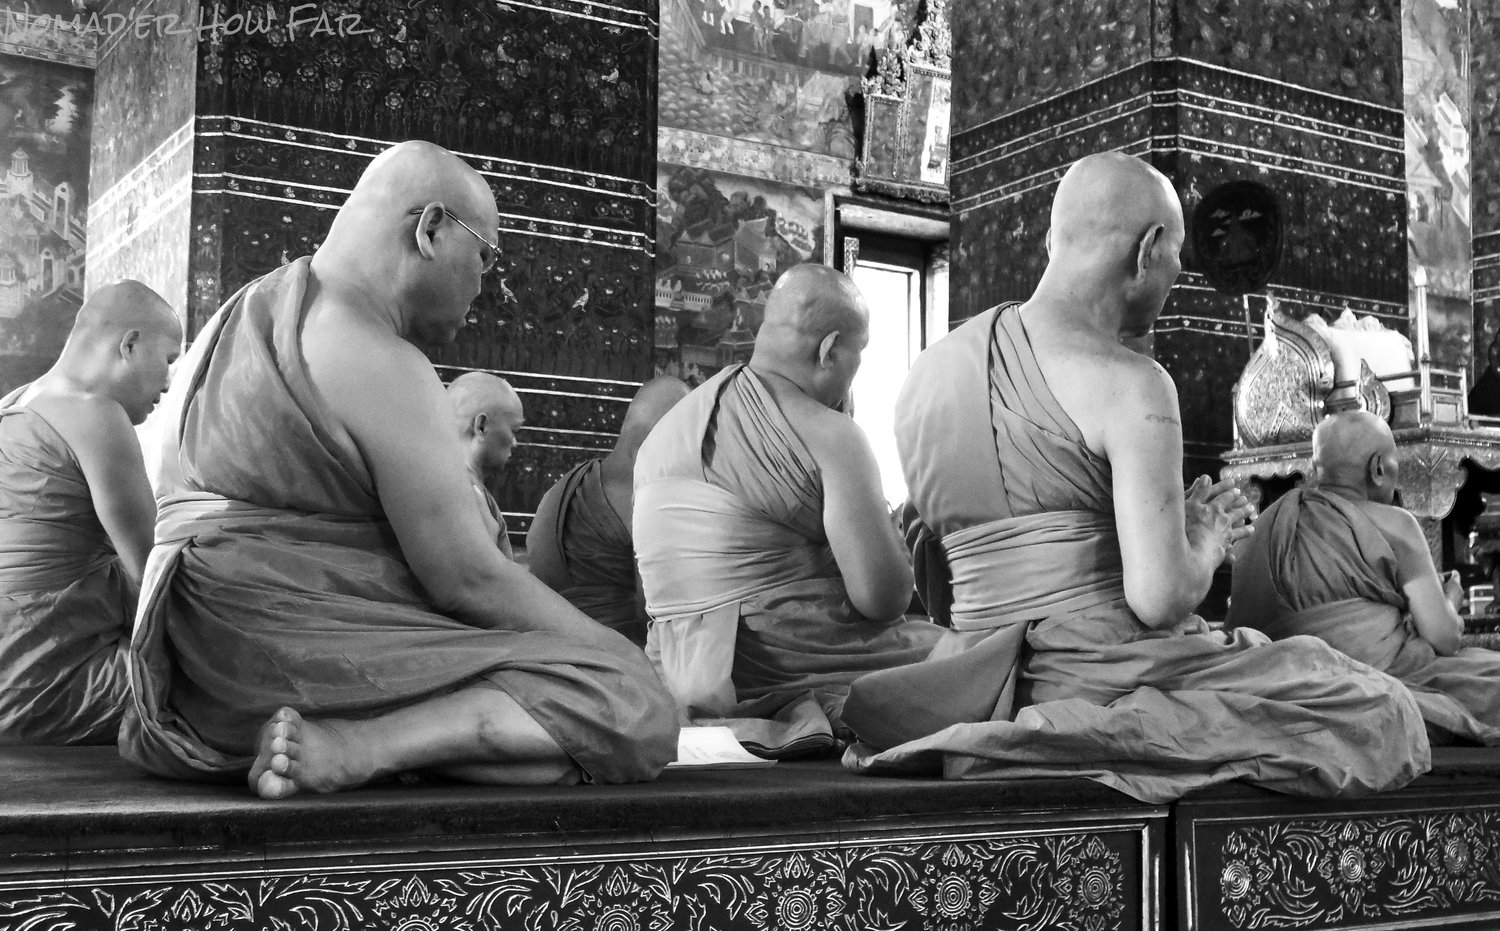 temple hopping in bangkok photo essay nomad er how far temple hopping in bangkok photo essay